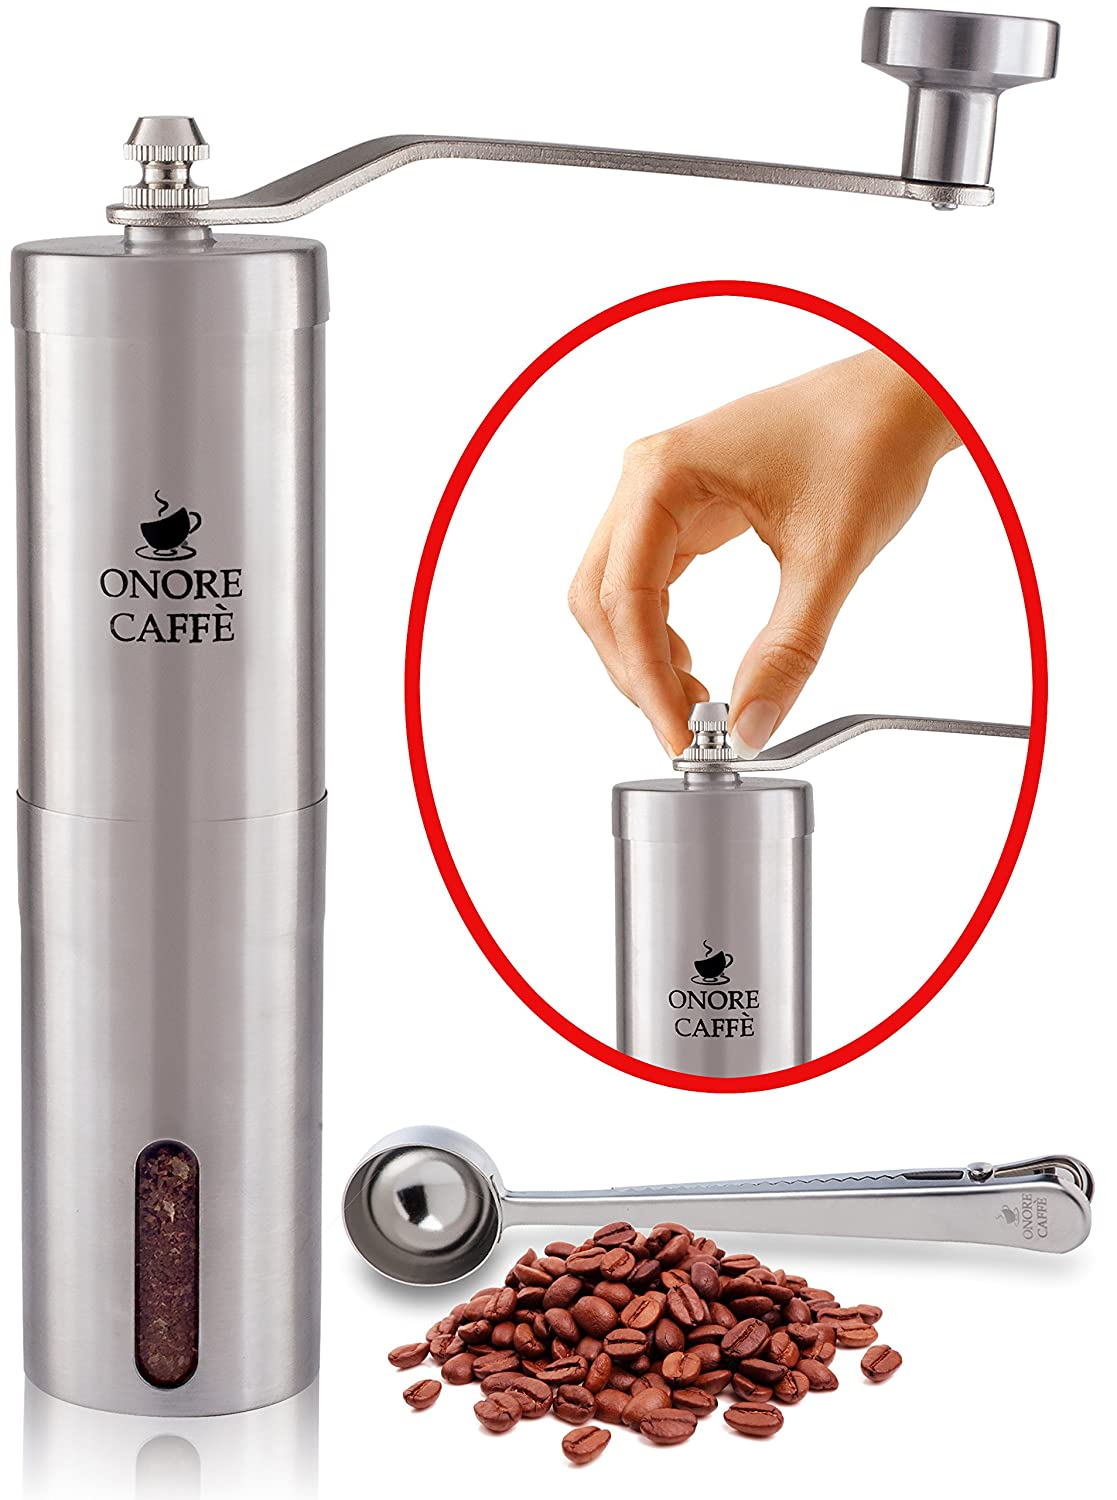 ONORE CAFFE Coffee Grinder Review